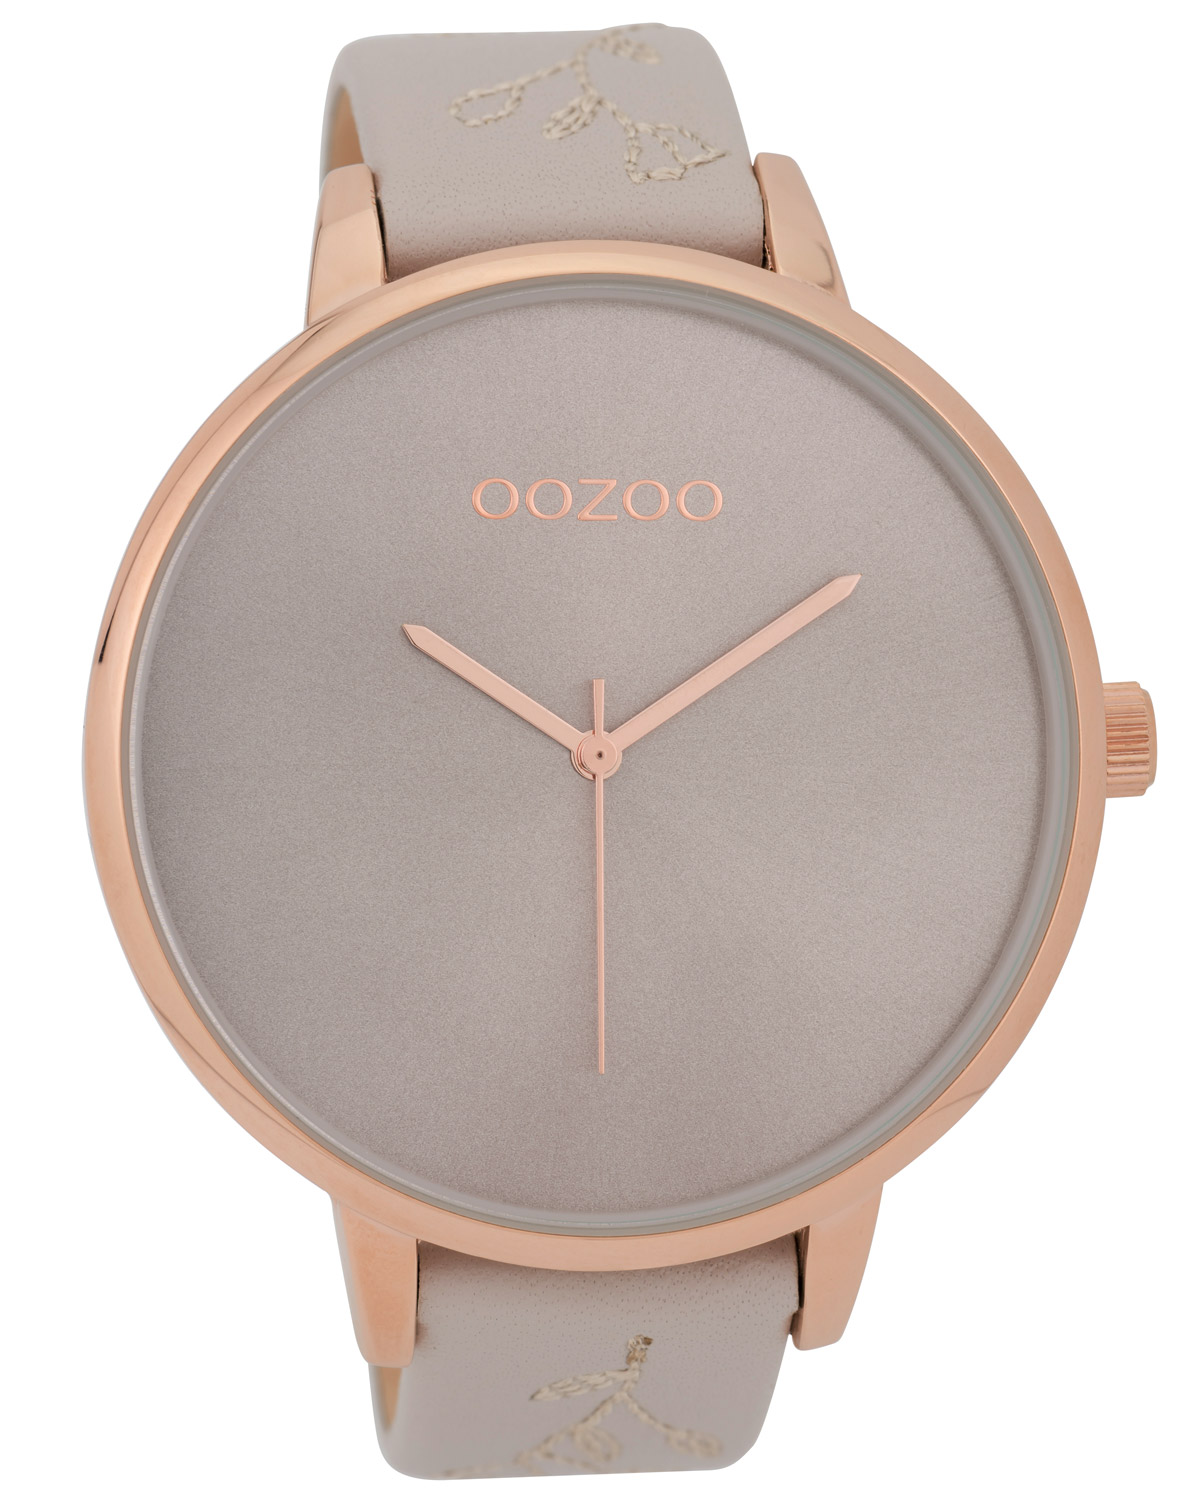 Oozoo XL Ladies  Watch with Leather Strap Light Grey 48 mm C9715 f8d99625ad1